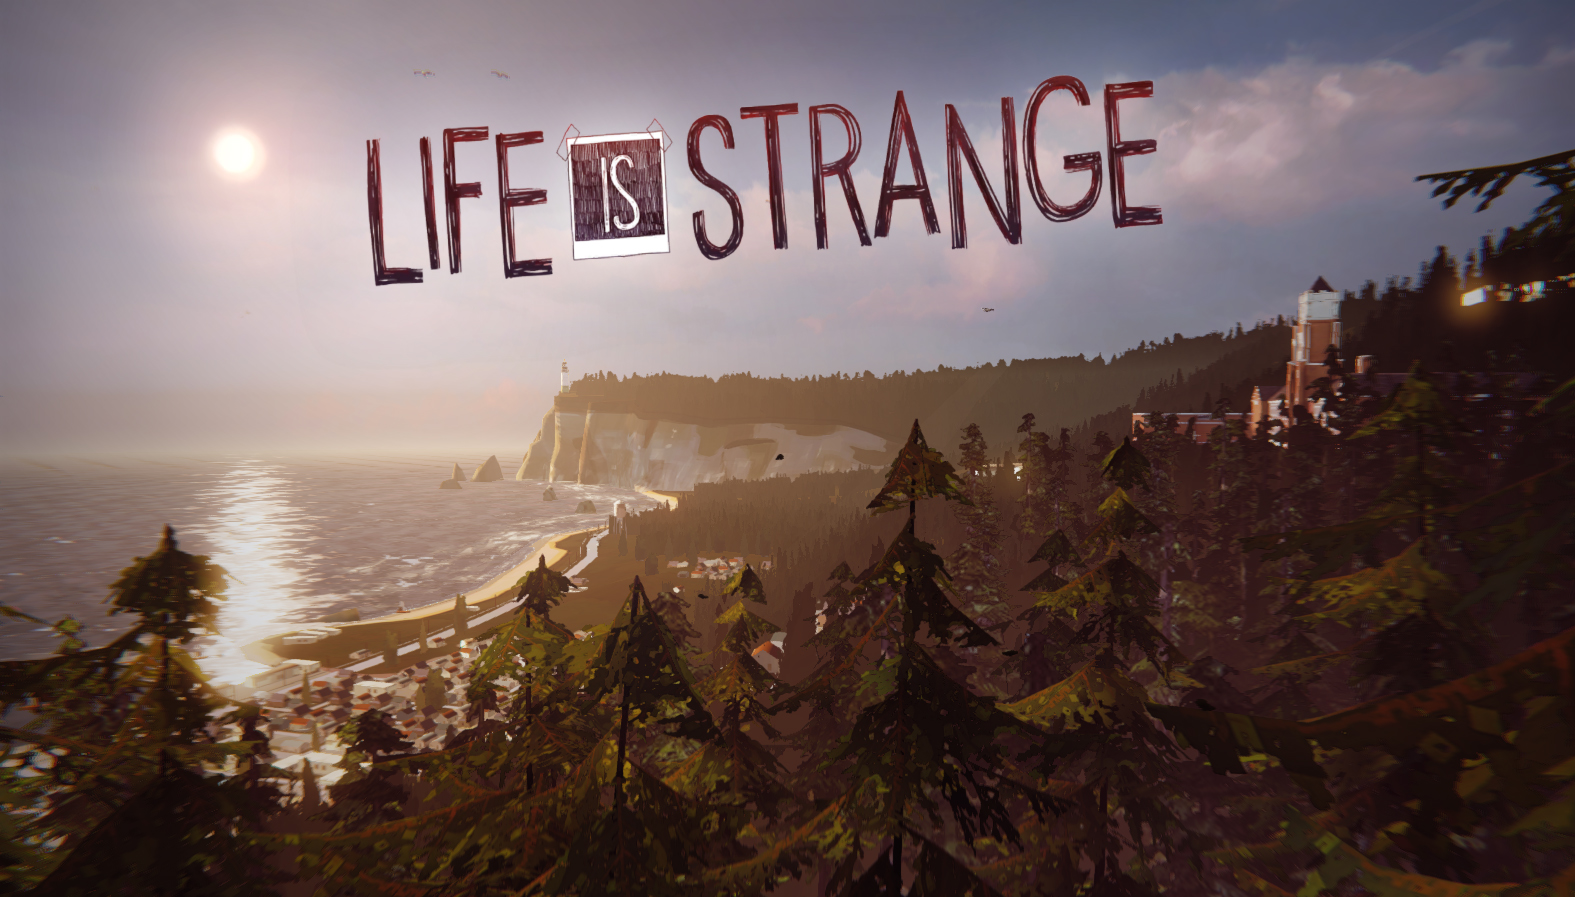 life-is-strange-title